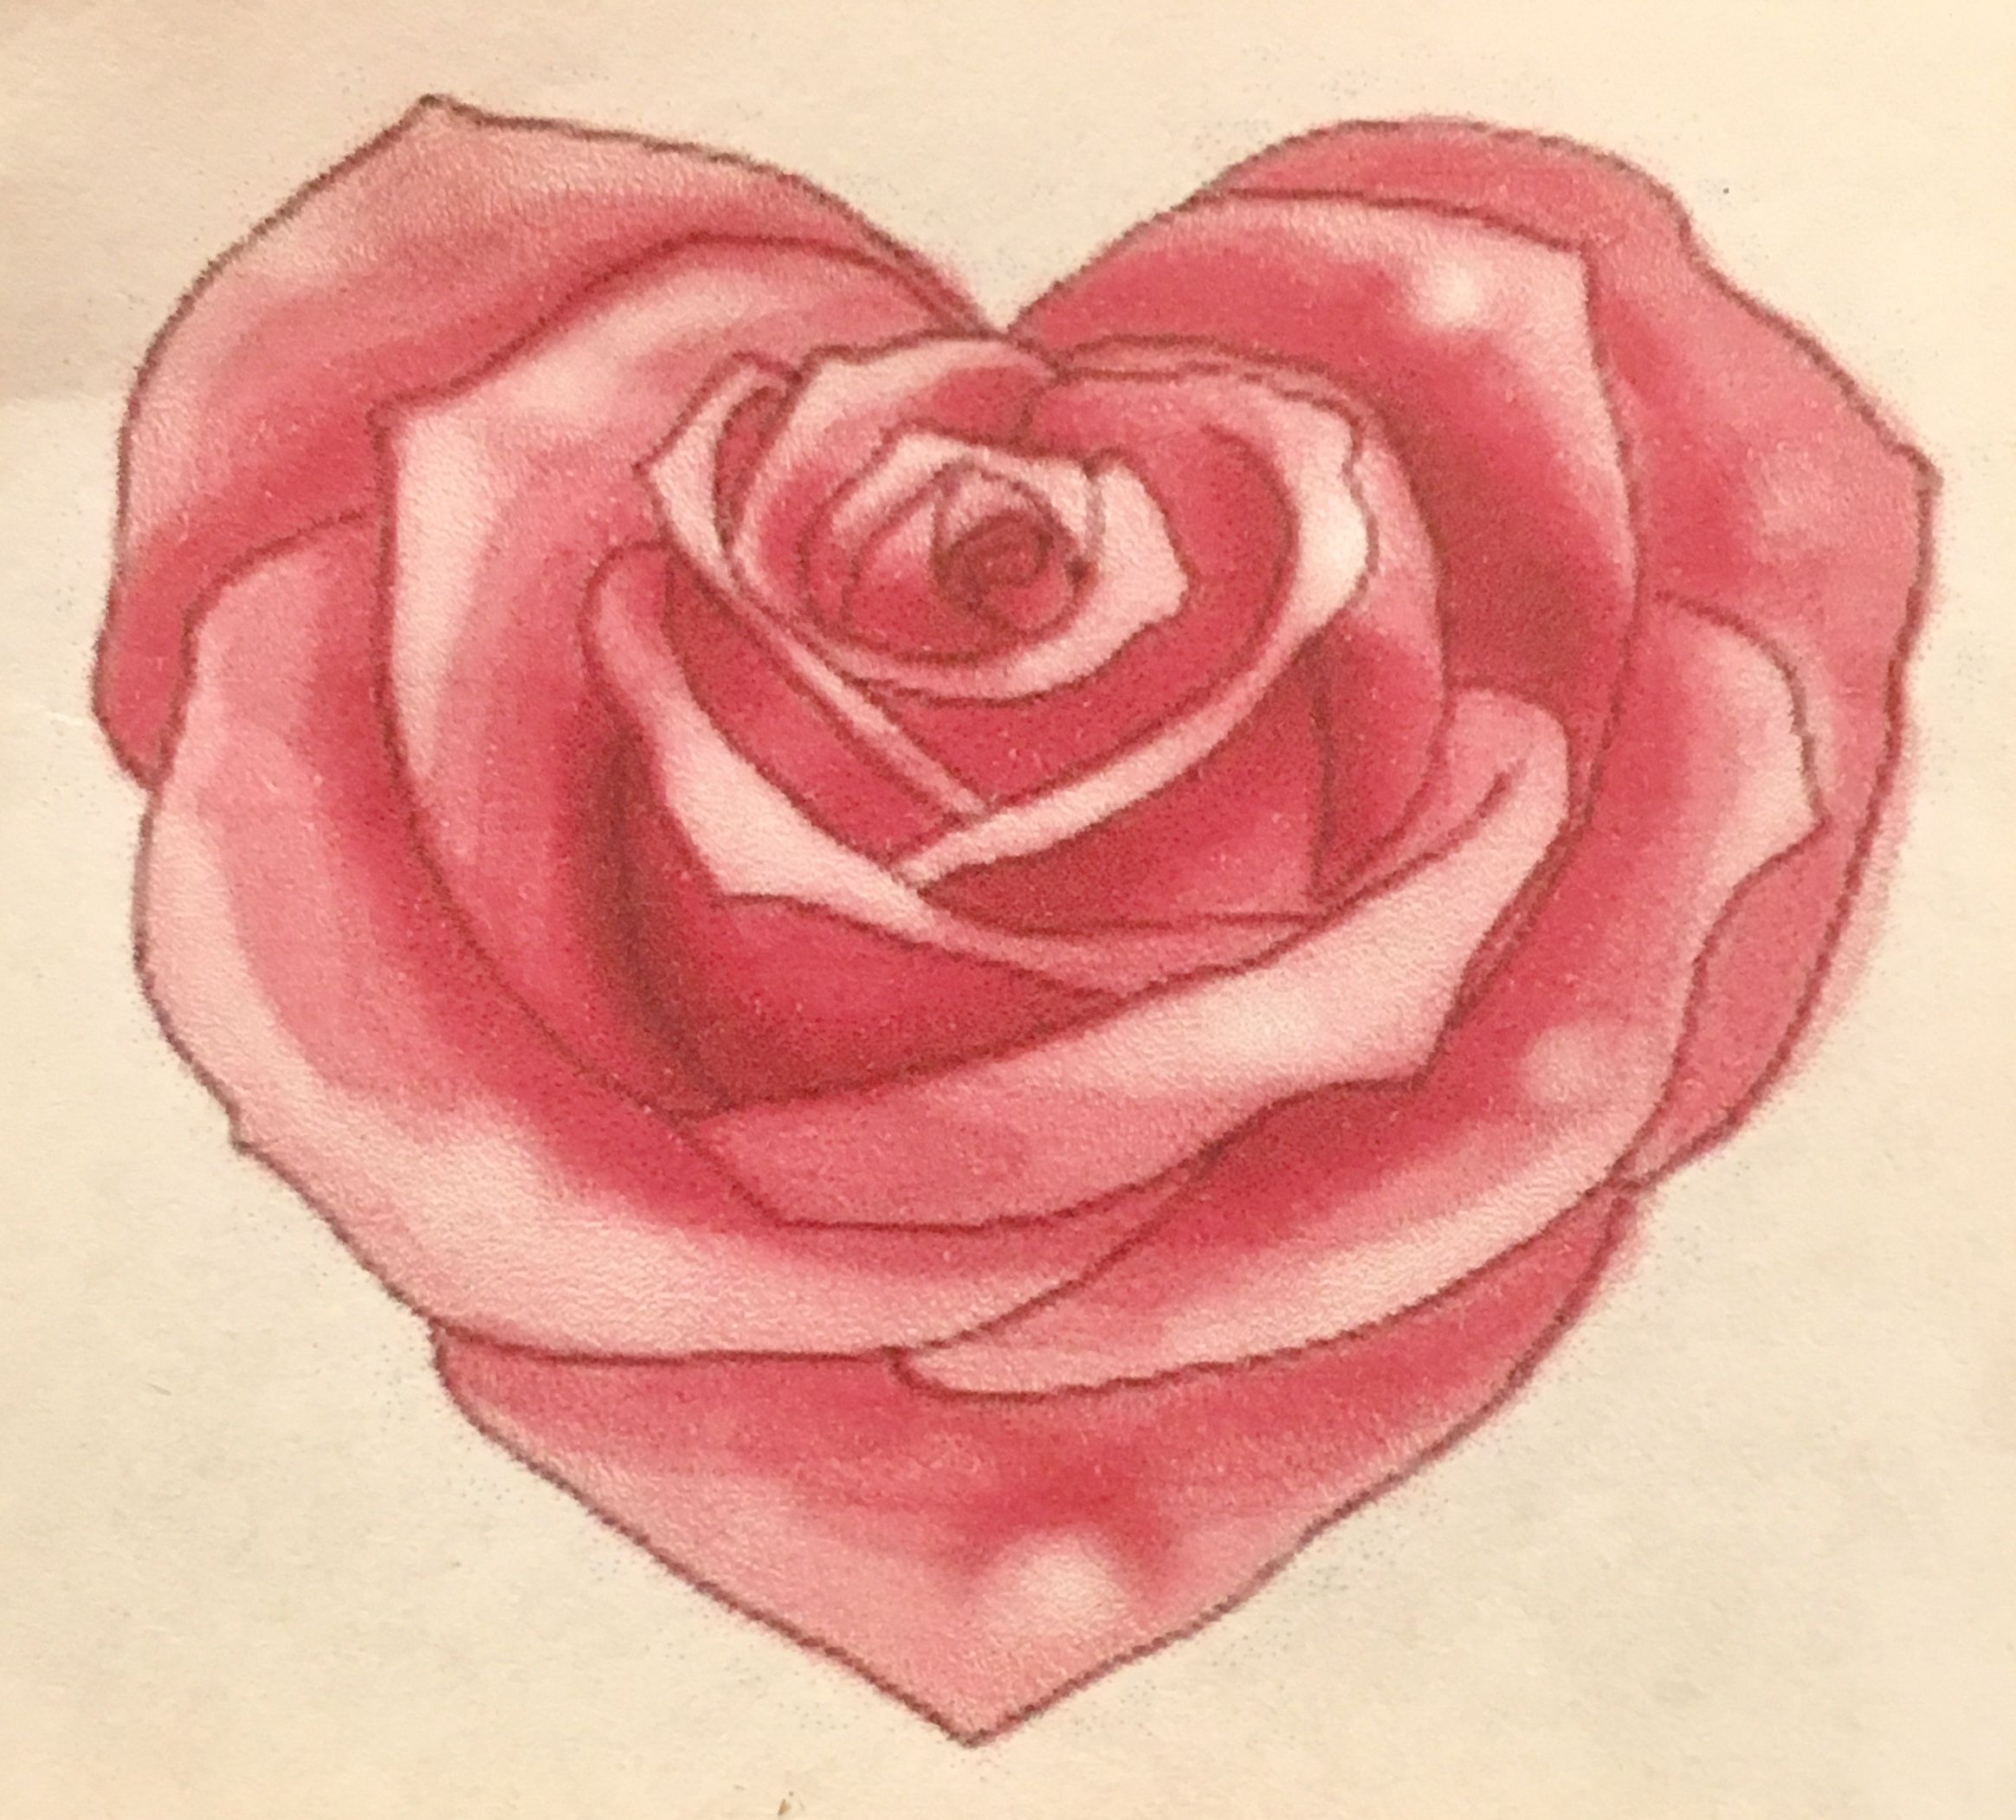 Pin By Sergio Ricardo Tattoo On Dia Das Maes Flower Drawing Tutorials Roses Drawing Rose Sketch